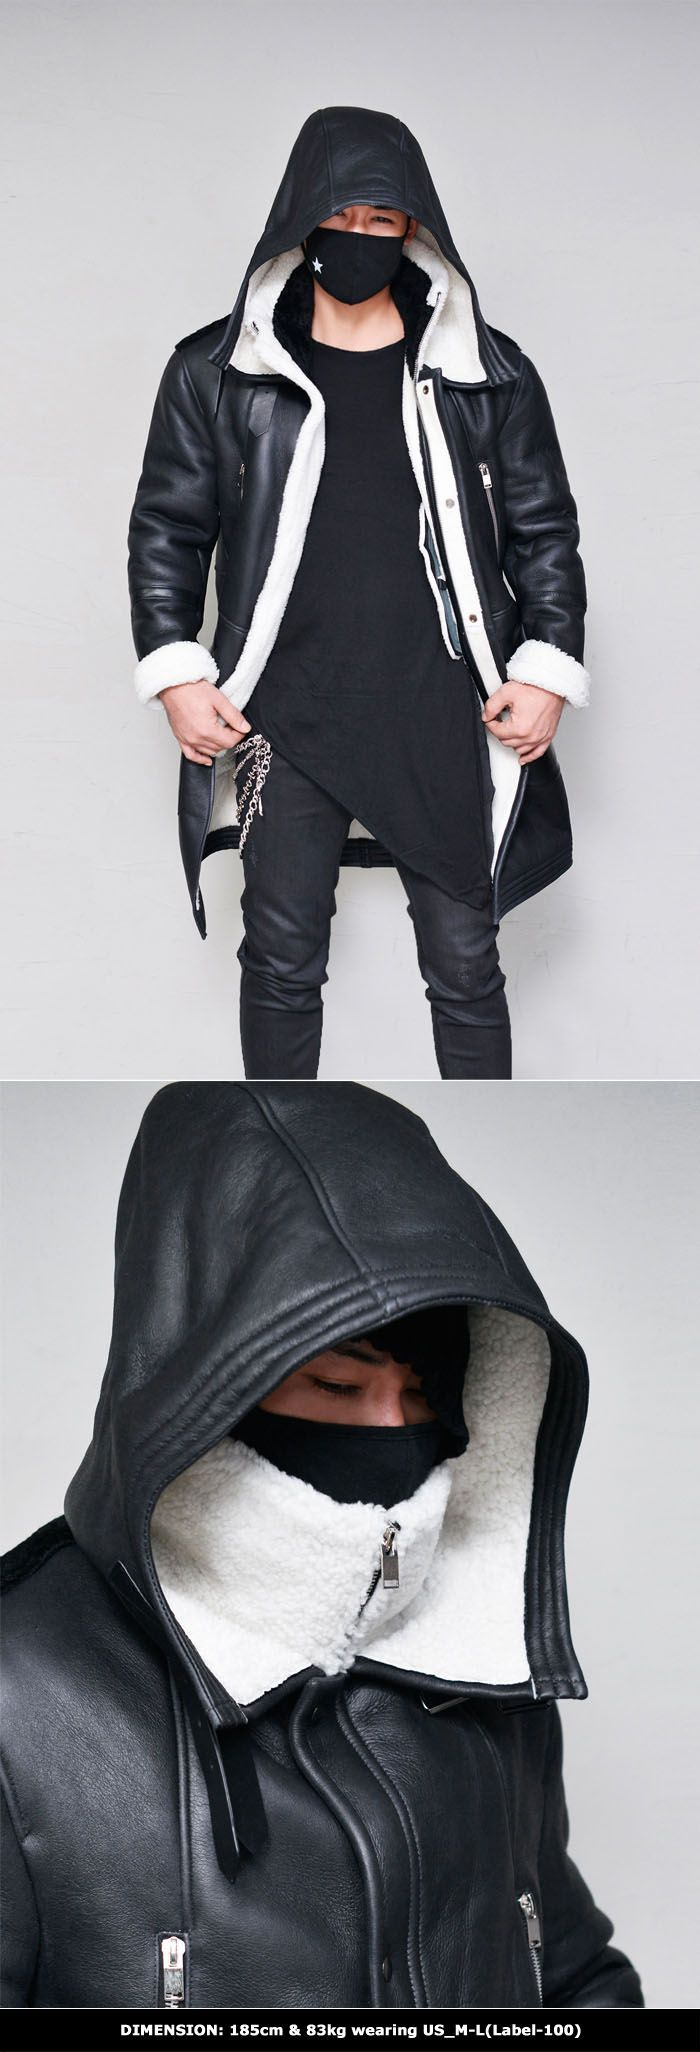 Shearling Lambskin Hooded Armor Long-Leather 116 by Guylook.com  Premium quailty 100% thick lambskin with 100% full thick shearling lining Unbeatable powerful dark-edge look & toasty warm & cozy Generously sized yet still creates a flattering slim drape Big size hood & long length Black shearling back contrast Double-belted buckles on the neck Double-layer highneck turtle with black shearling contrast that prevents it's neck part from getting dirt from skins Style killer monster with amazing…